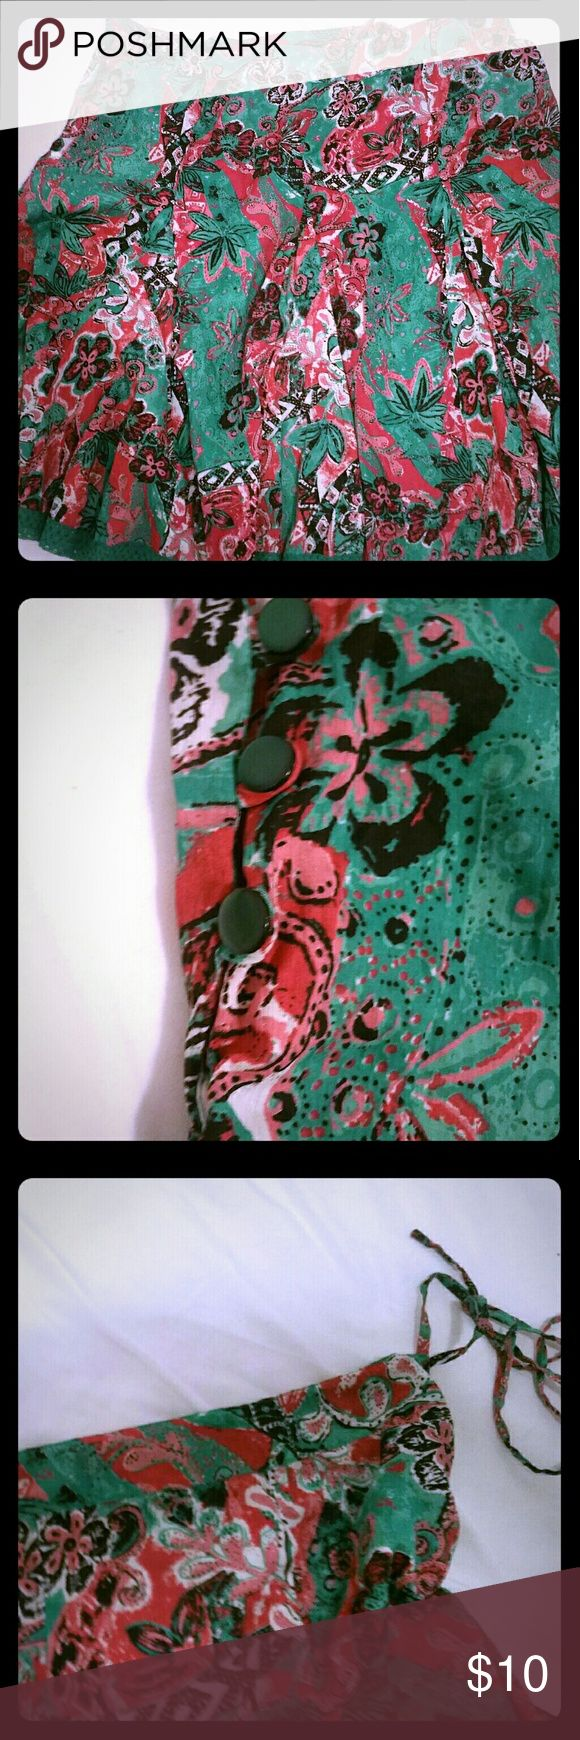 Fun drawstring waist skirt Floral skirt beautiful and fun to wear. Bright colors, drawstring waist and embroidered hemline. Truly one size but labeled a Large. XOXO Skirts A-Line or Full